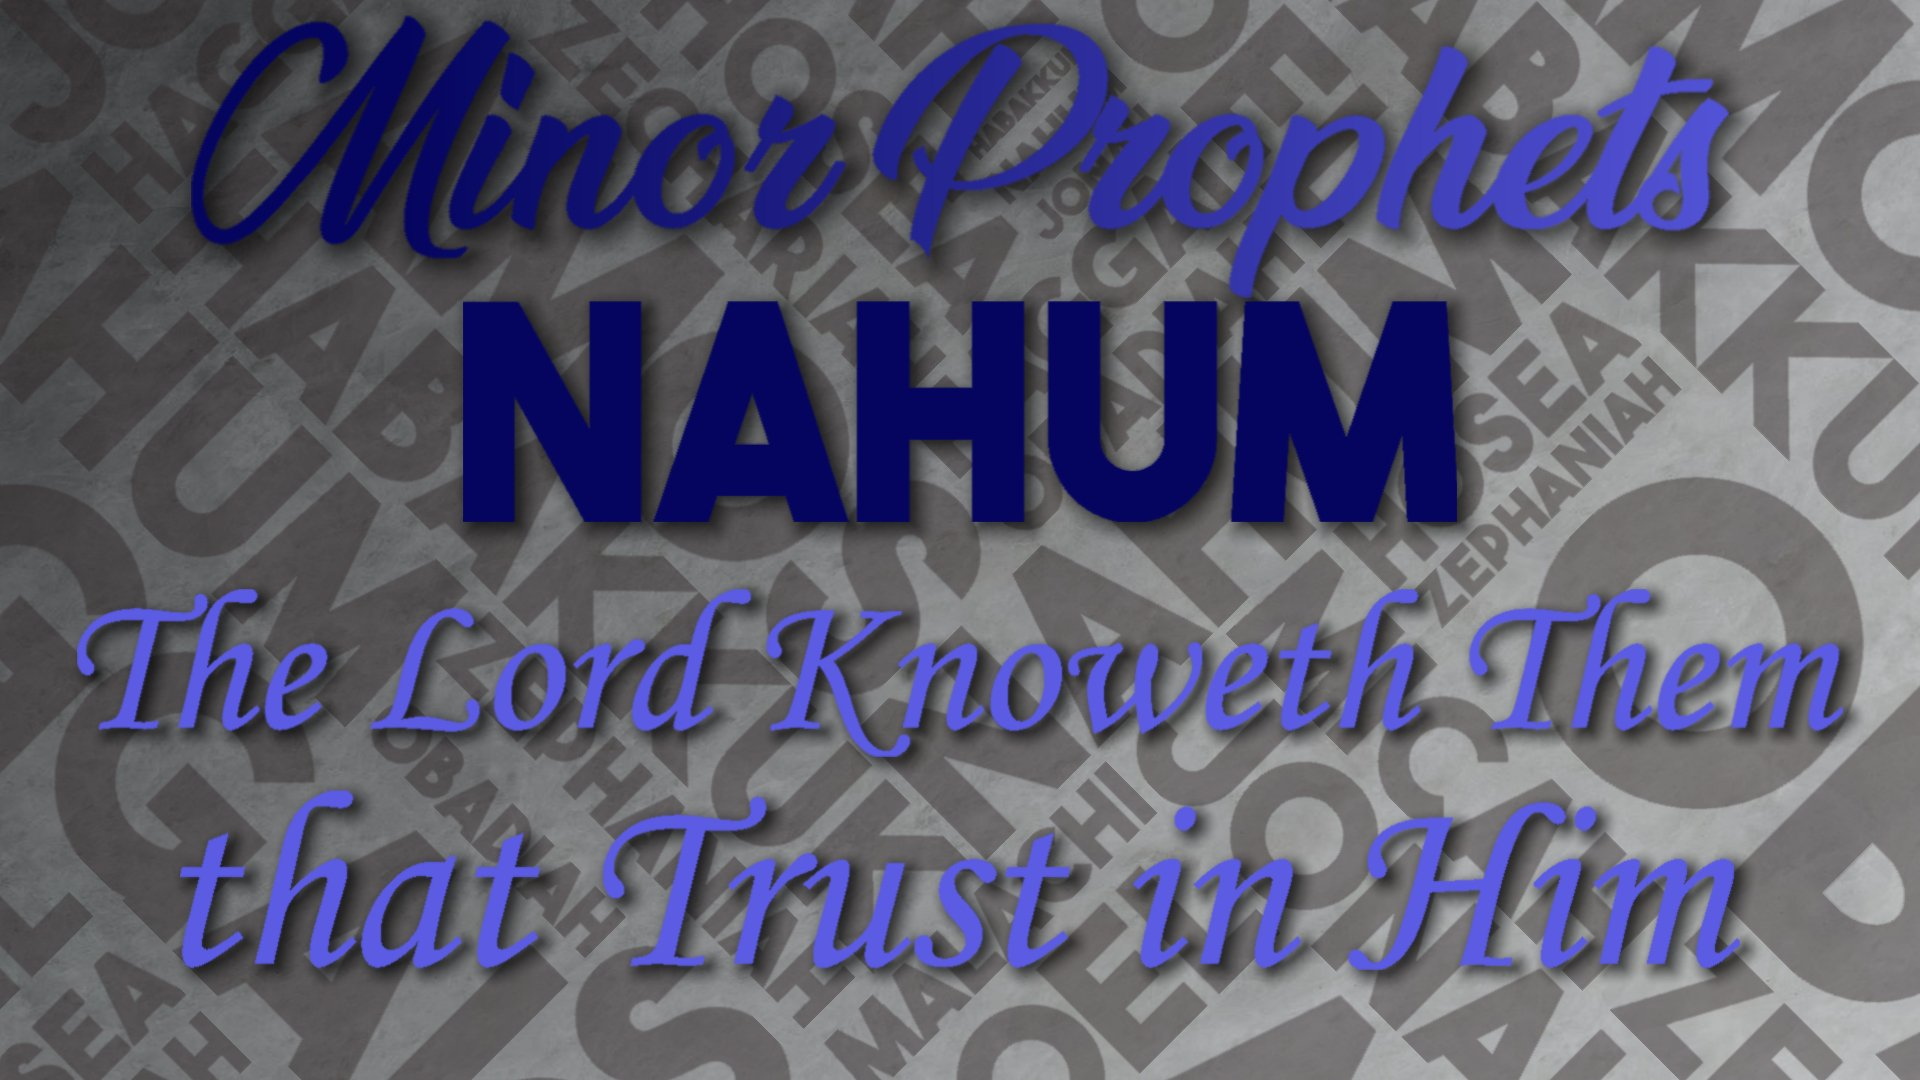 19 The Lord Knoweth Them that Trust in Him